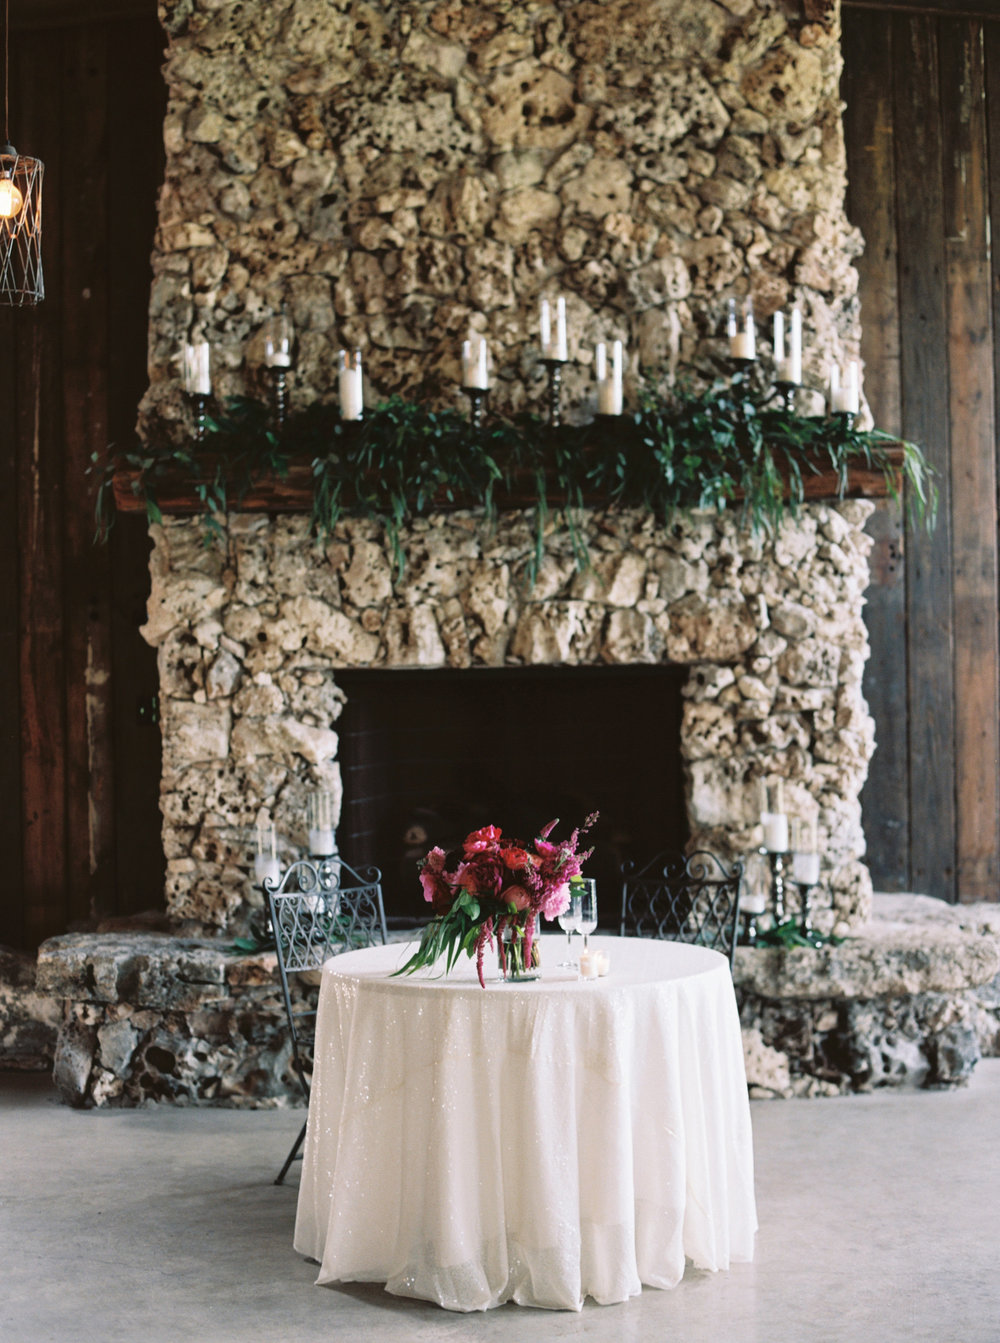 the-creek-haus-wedding-venue-austin-texas-wedding-destination-venue-with-lodging-fireplace-sweetheart-table